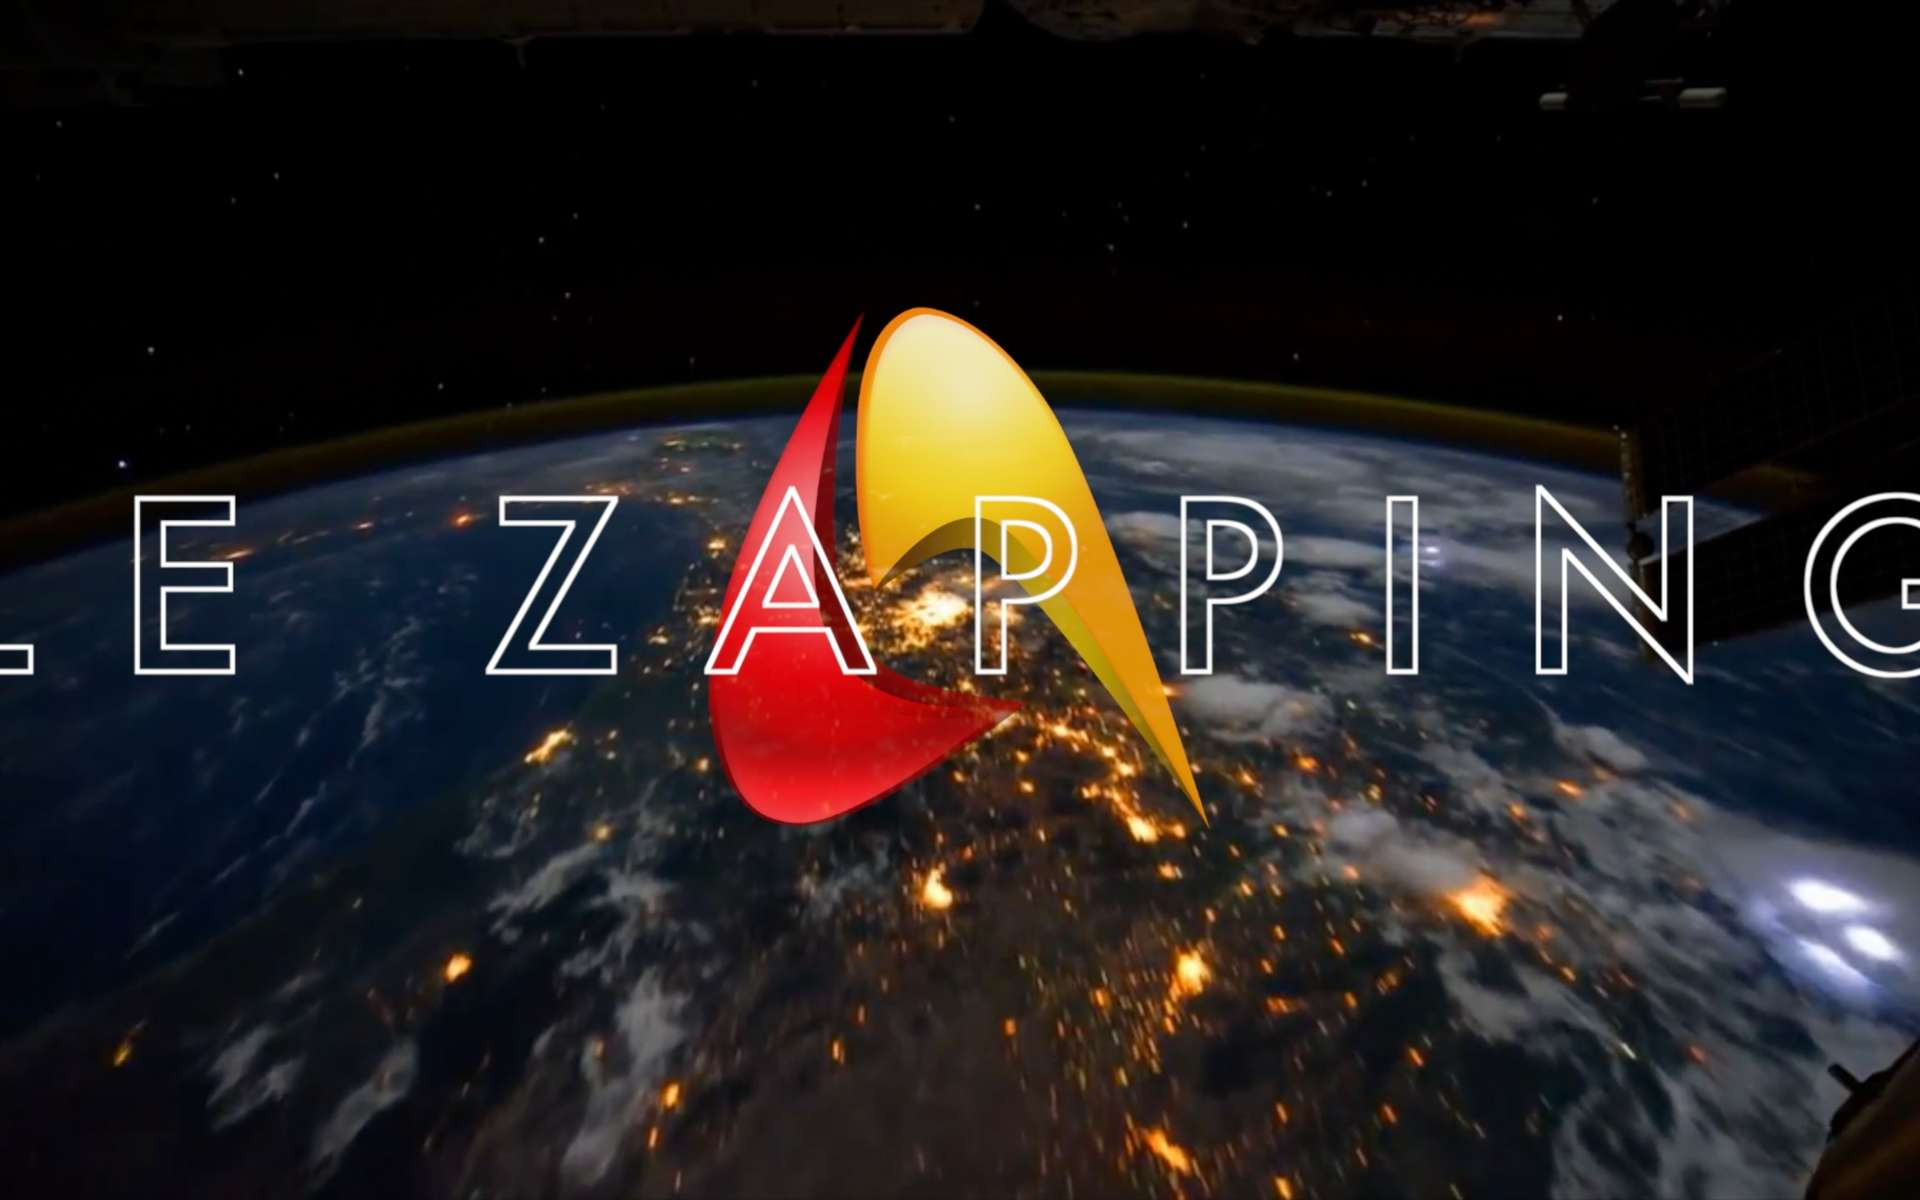 Le zapping de Futura-sciences : étonnant et instructif. © Futura-Sciences